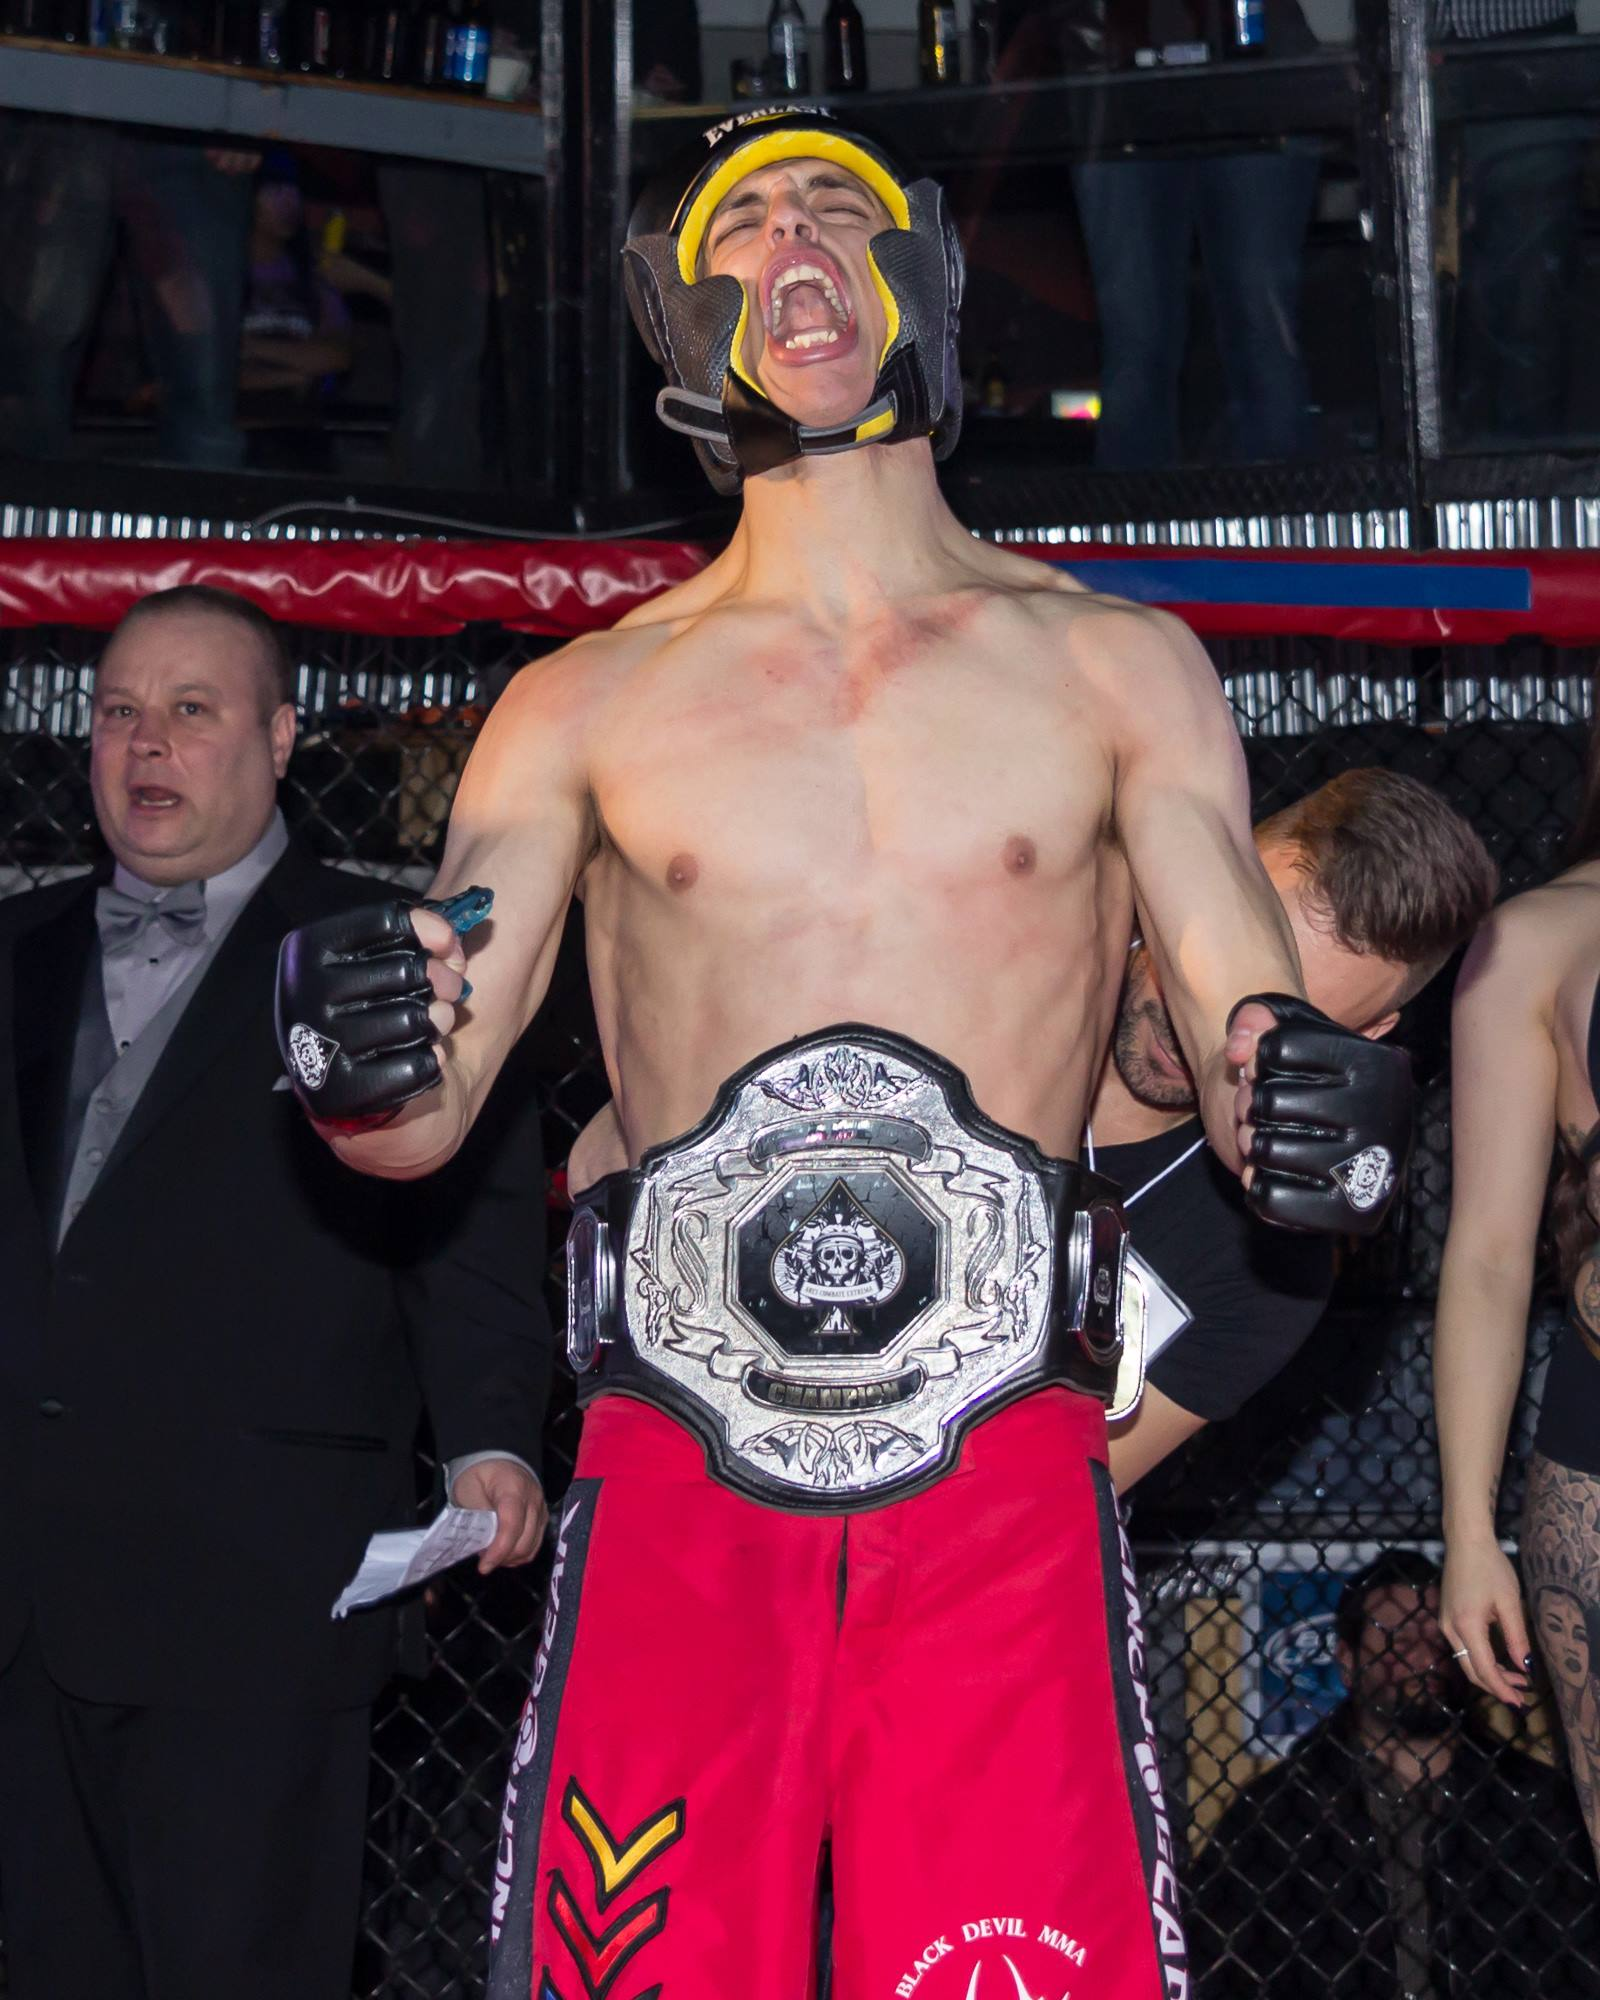 Throwback to the first ACE Fighting show in March, 2015.